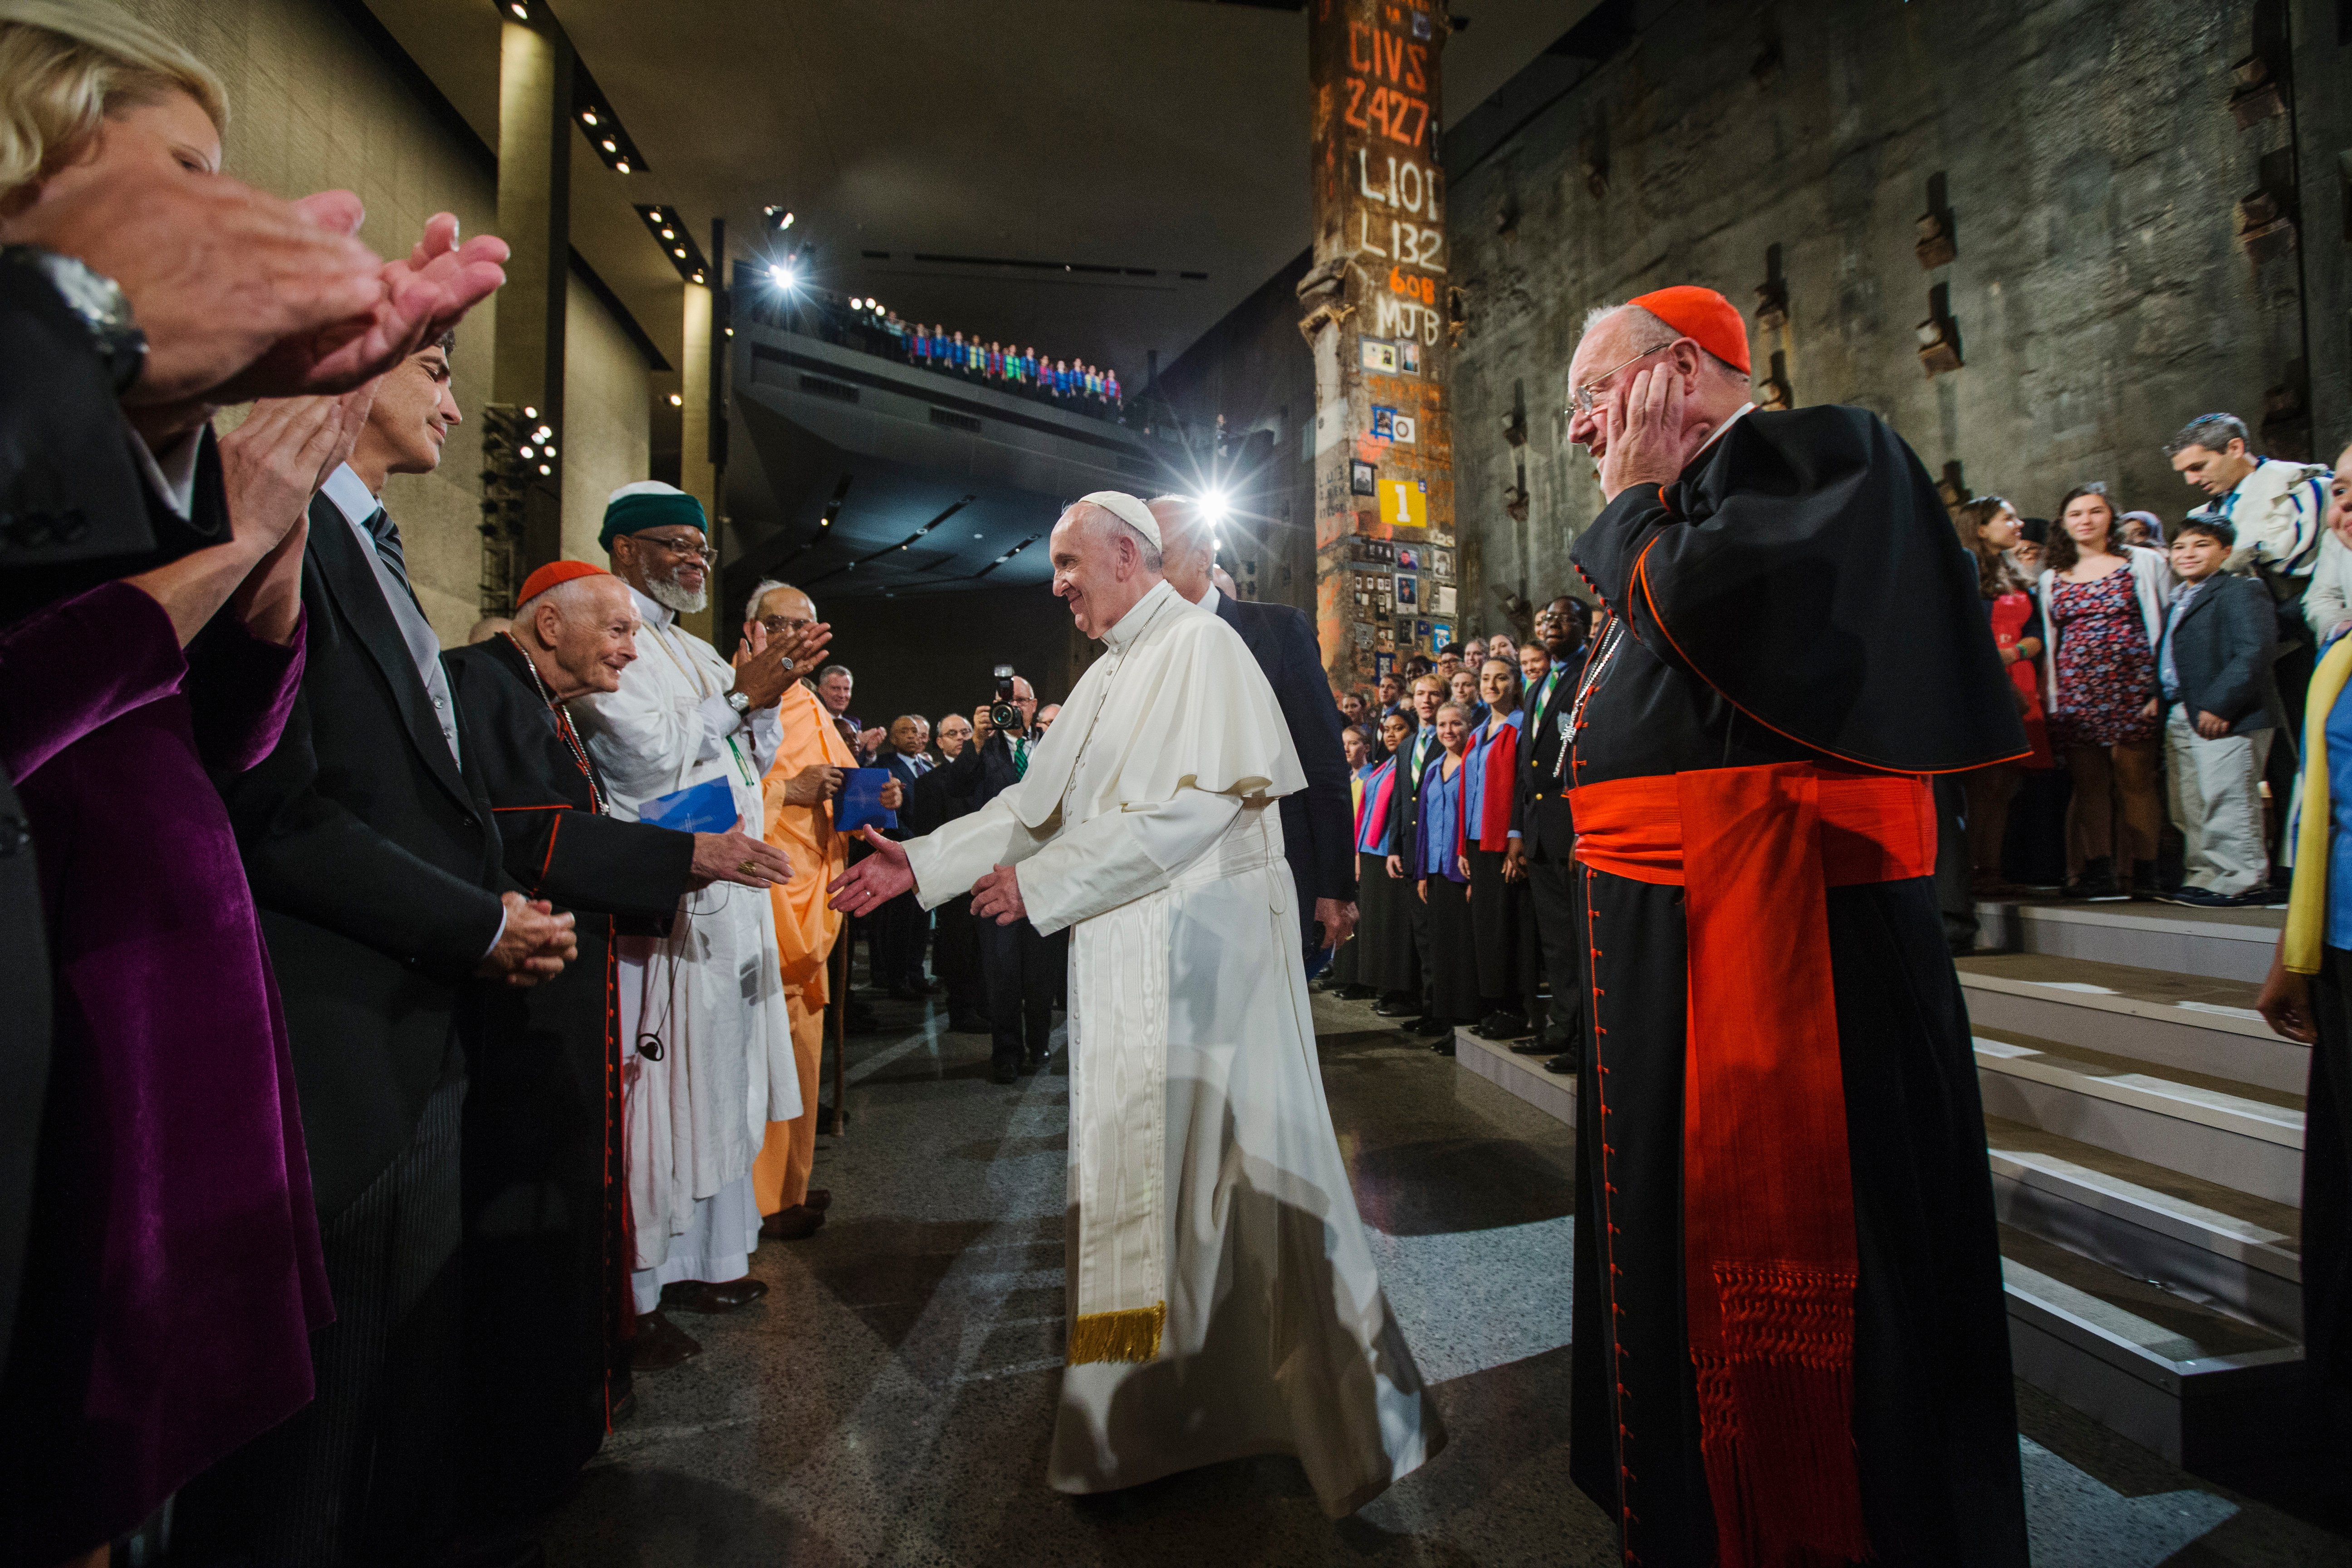 NEW YORK, NY - SEPTEMBER 25: Pope Francis greets Cardinal Theodore McCarrick, former Archbishop of Washington, DC, following a multi-religious gathering during a visit to the 9/11 Memorial and Museum on September 25, 2015 in New York City. Pope Francis visited the former World Trade Center site as part of his five-day trip to the United States. (Photo by Jin Lee-Pool/Getty Images)